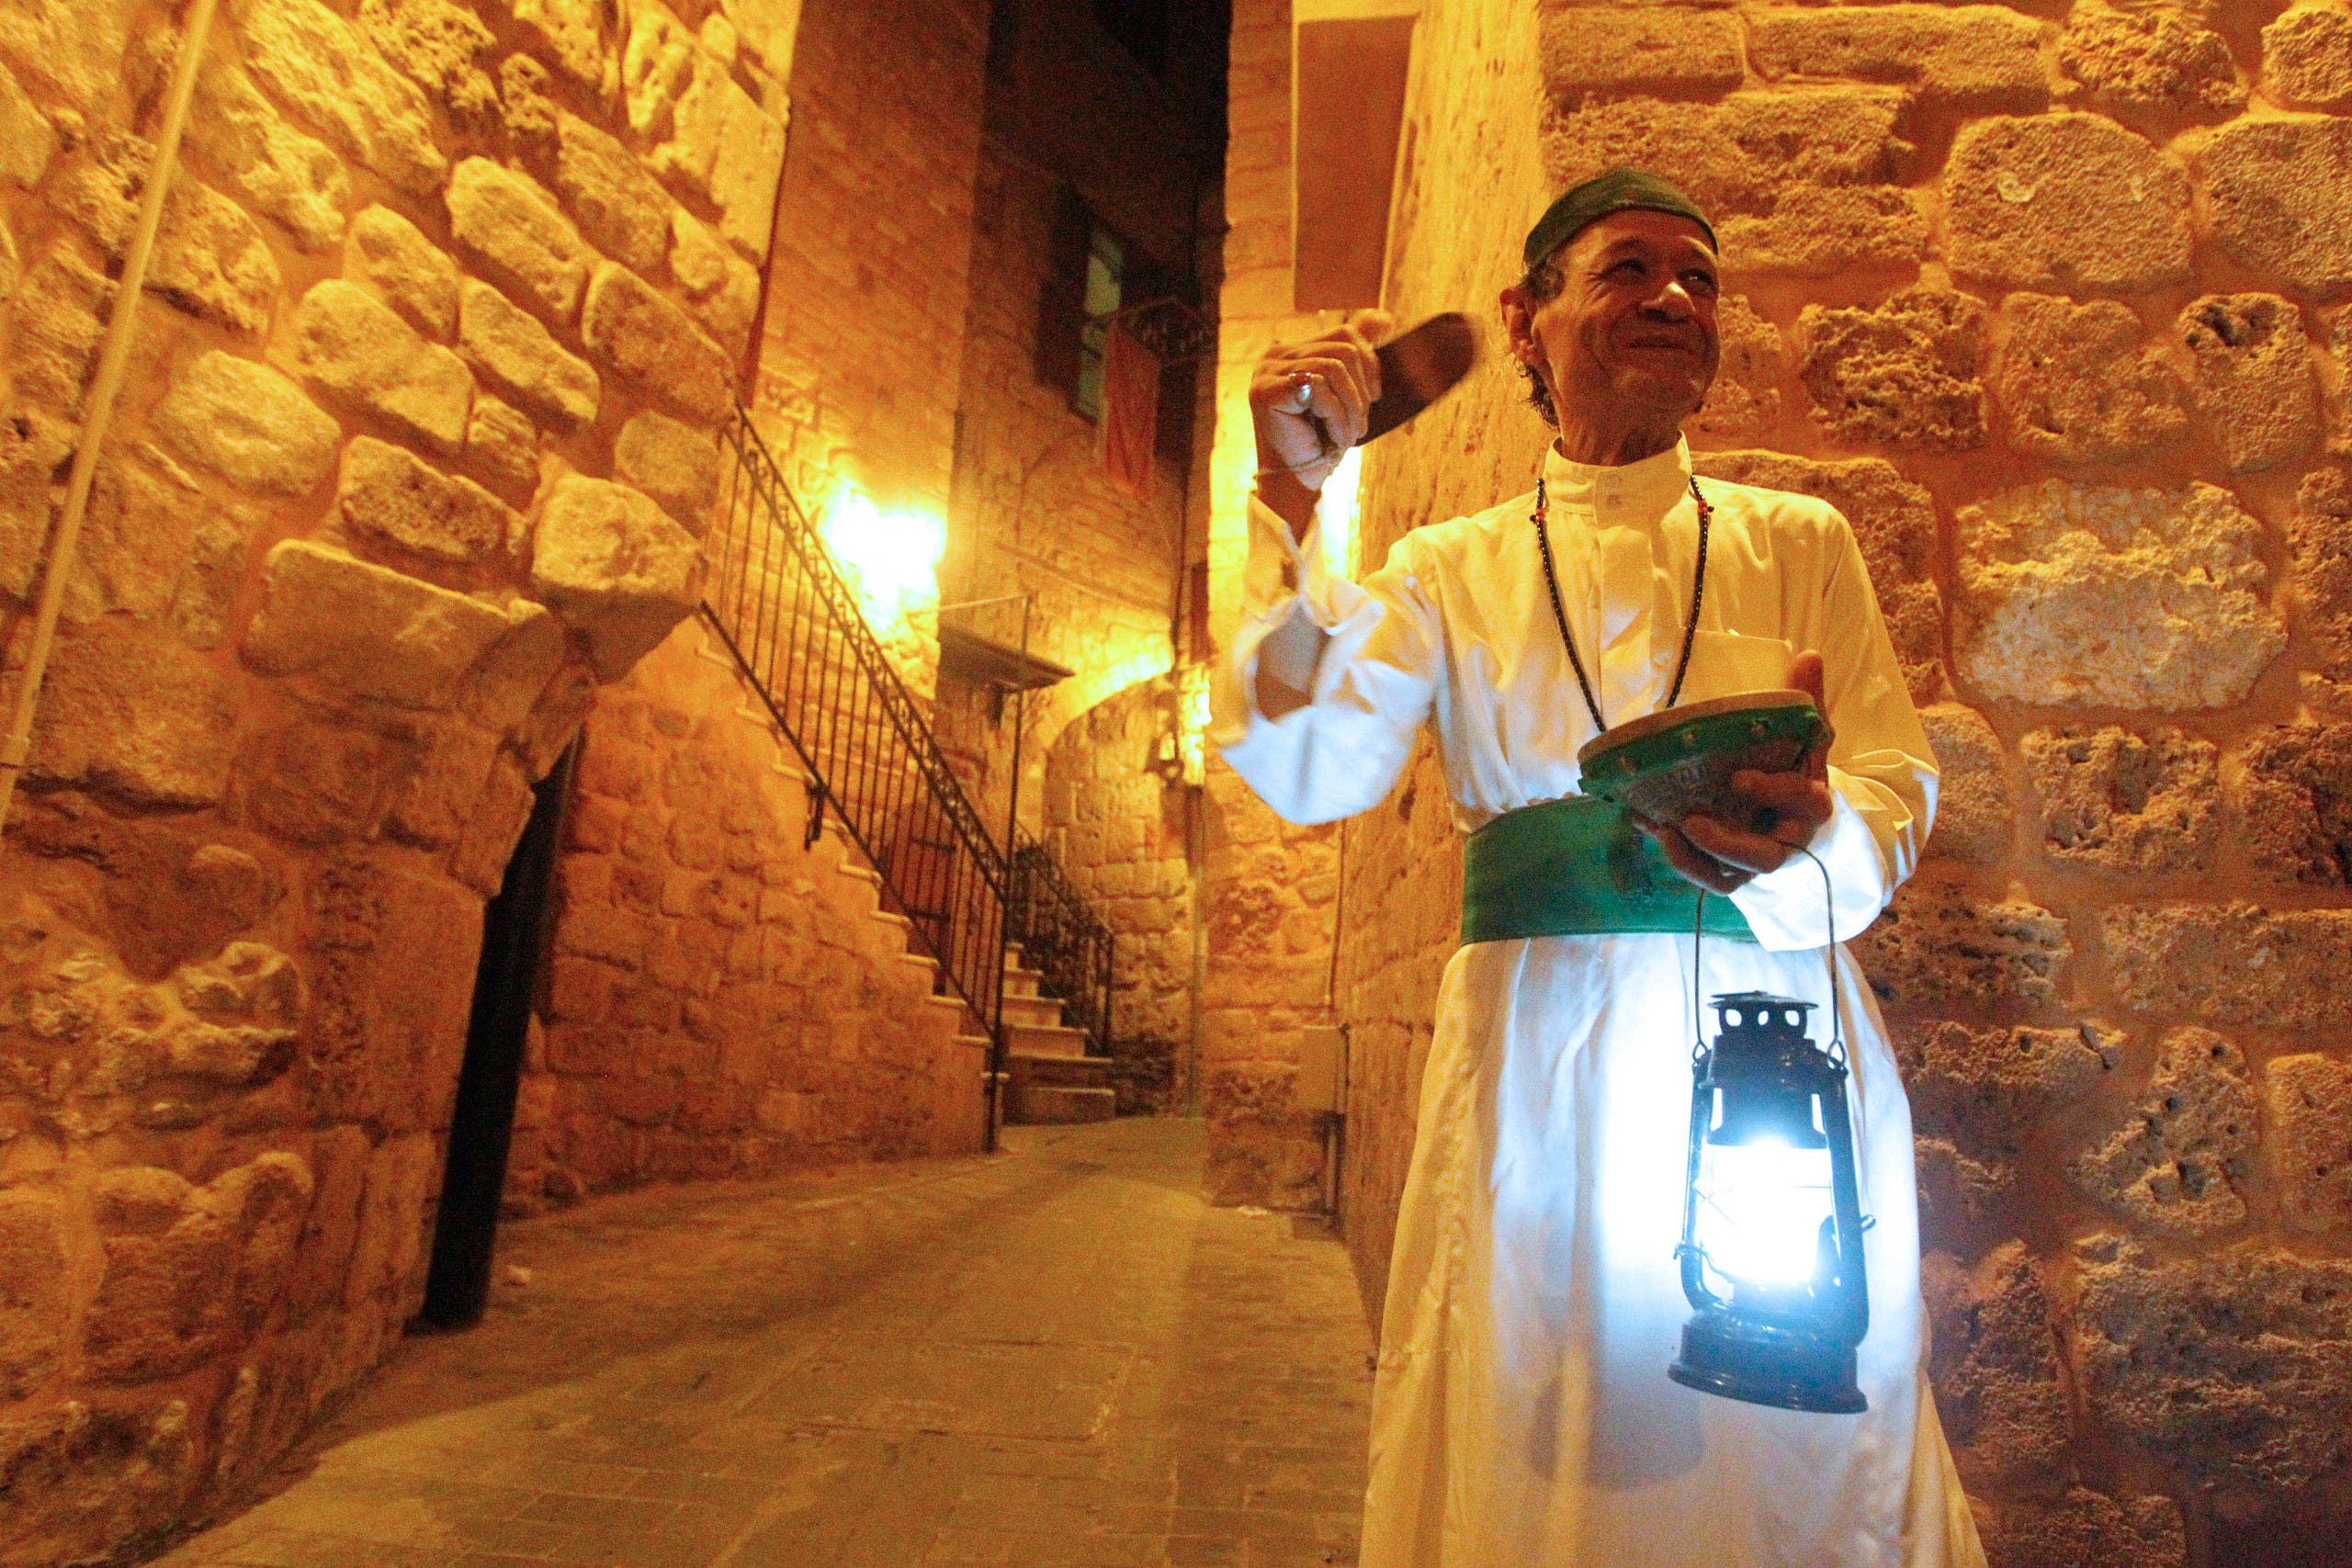 A Mesaharaty, or dawn awakener, strikes his drum to wake observant Muslims for their overnight 'sahur', last meal, before the day's fast during Ramadan in Sidon's Old City in south Lebanon just before dawn July 12, 2013. (Reuters)